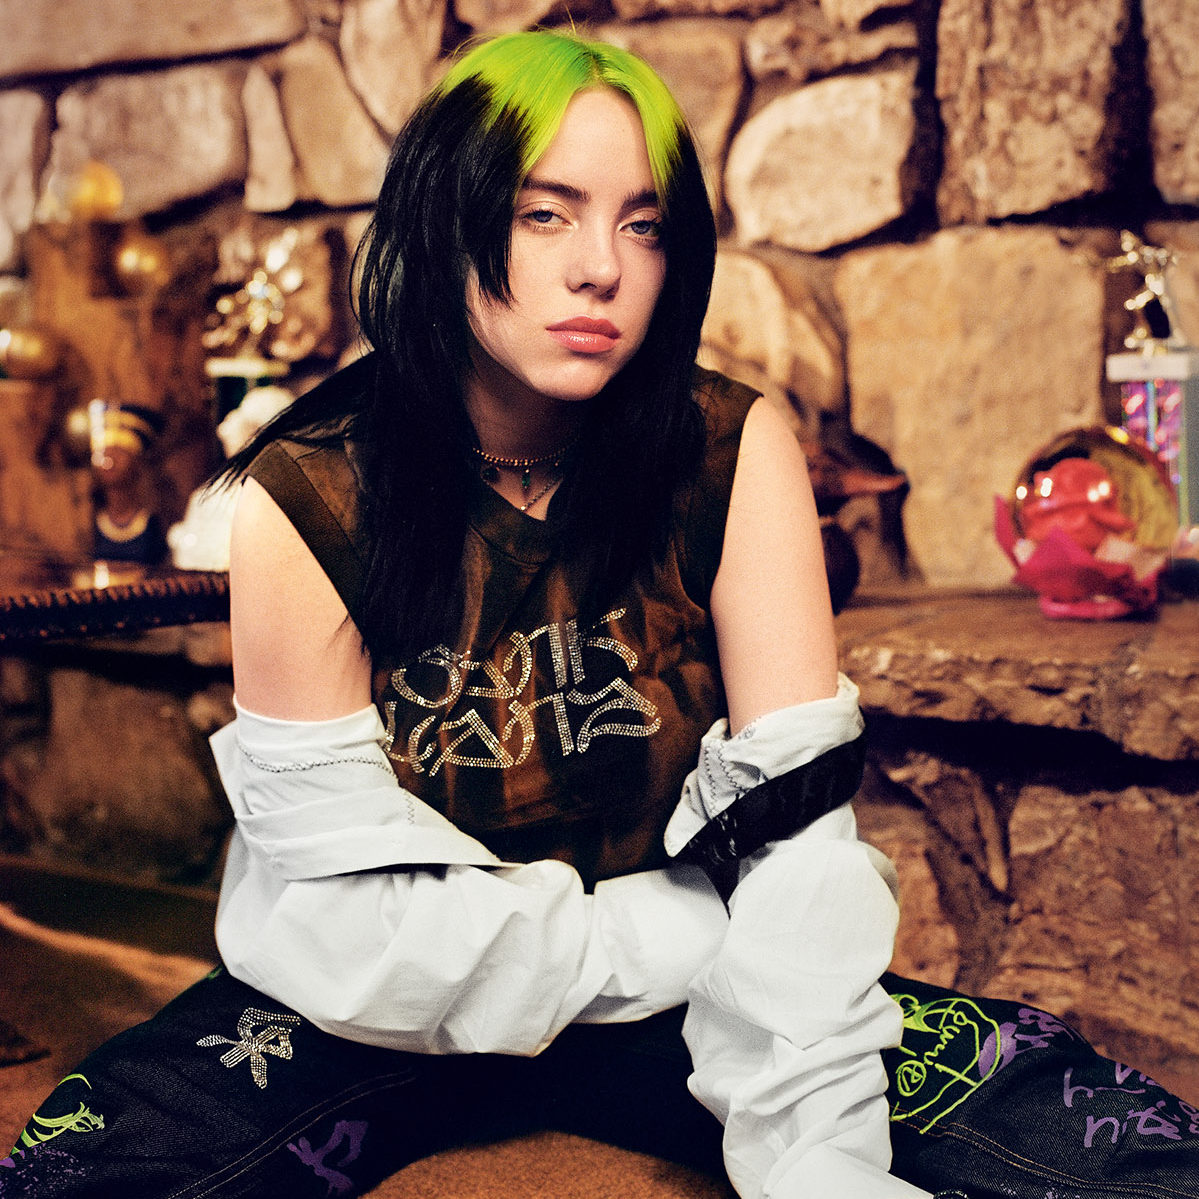 Billie Eilish publicly curses over the ban on abortion in Texas